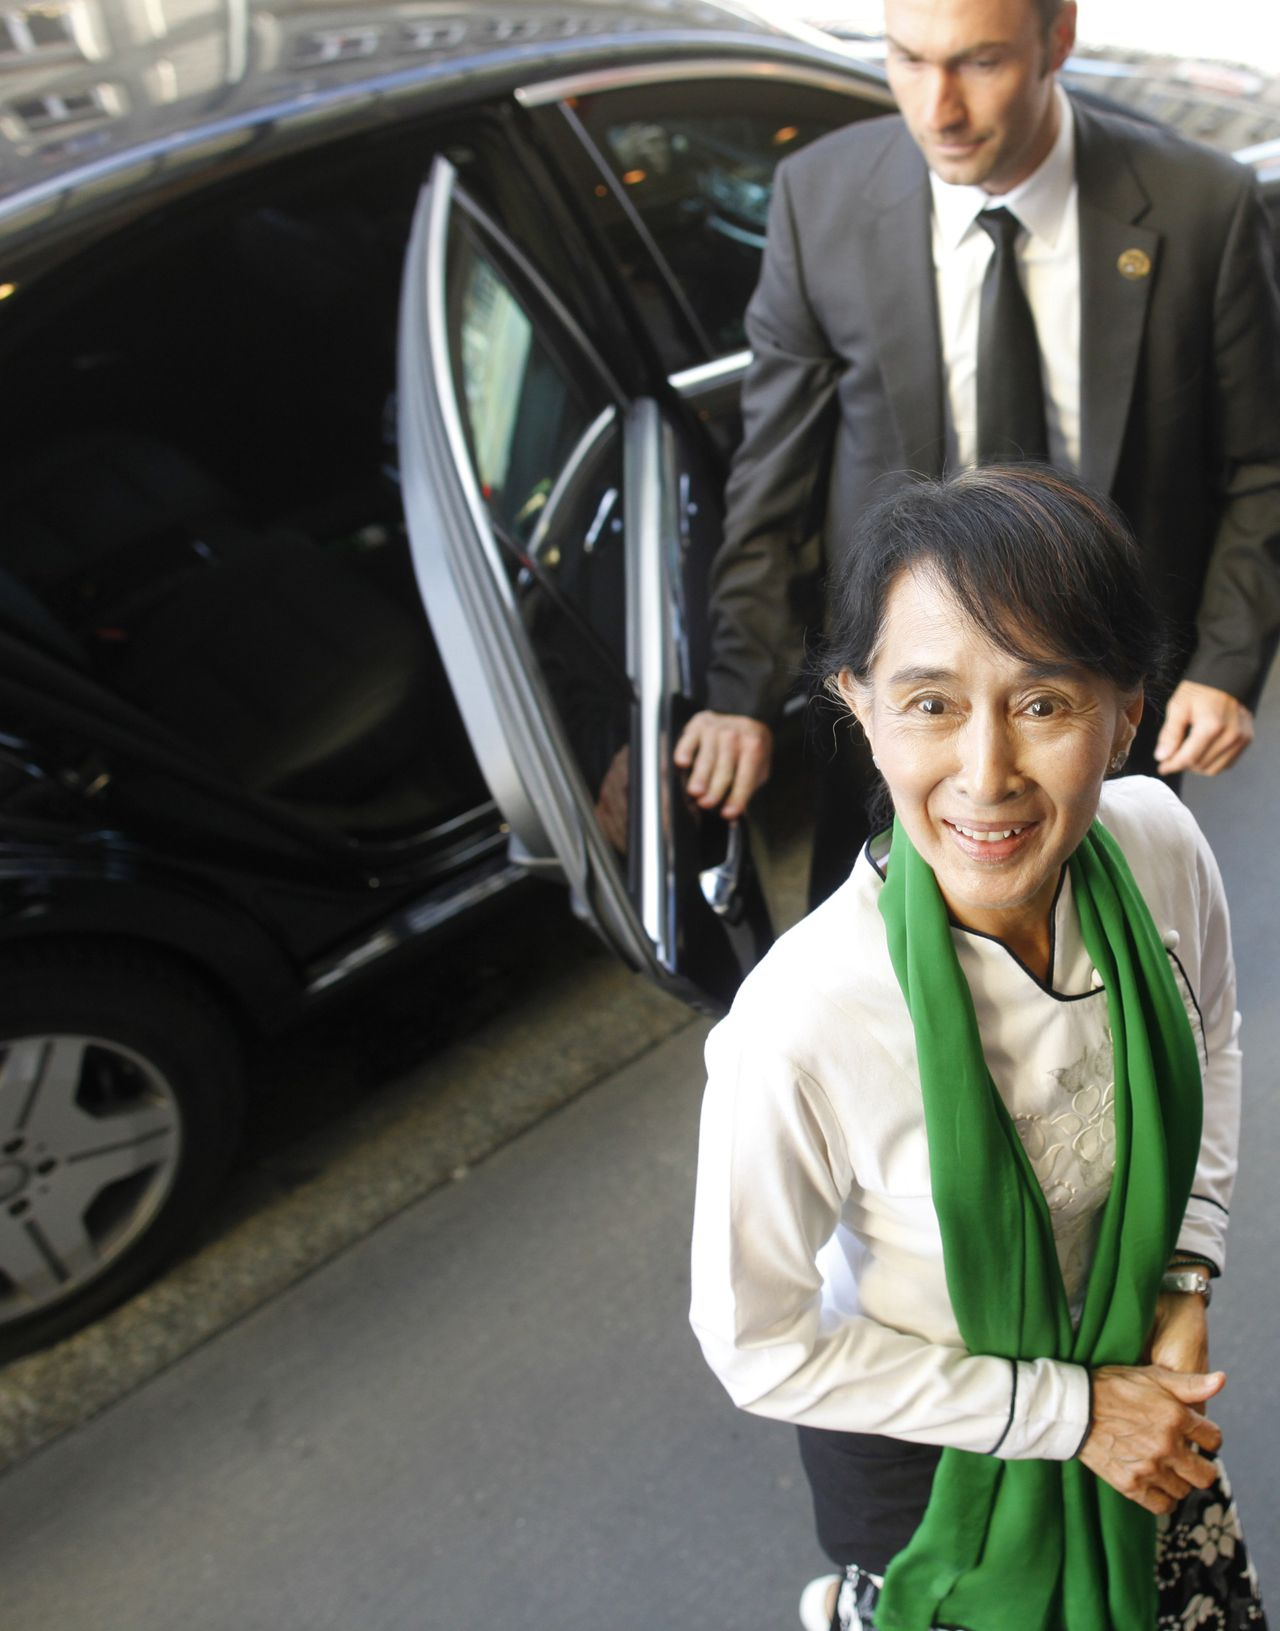 Myanmar's pro-democracy leader Aung San Suu Kyi arrives at the Bellevue Hotel in Bern, June 14, 2012. Suu Kyi began a tour of Europe almost certain to attract the kind of fanfare that will test the patience of the reformist generals now in power after decades of army rule. REUTERS/Ruben Sprich (SWITZERLAND - Tags: POLITICS)